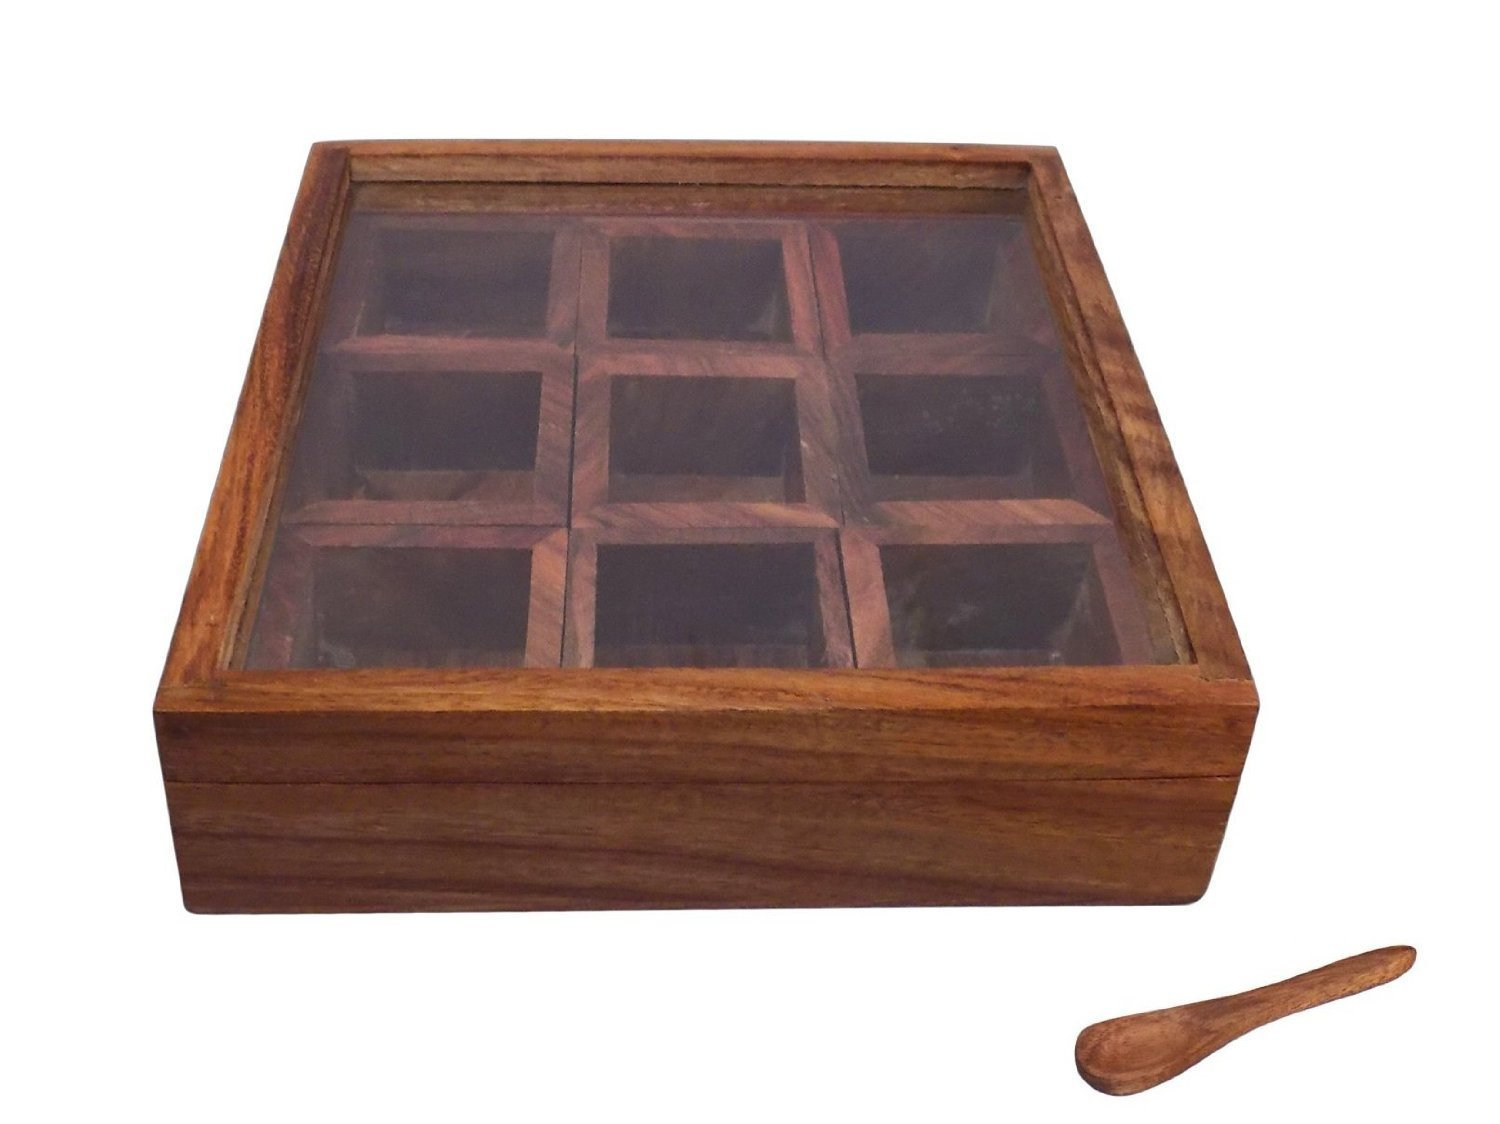 Wooden Hand Crafted Lock Dry Fruit / Masala Box / Container / Spice Box